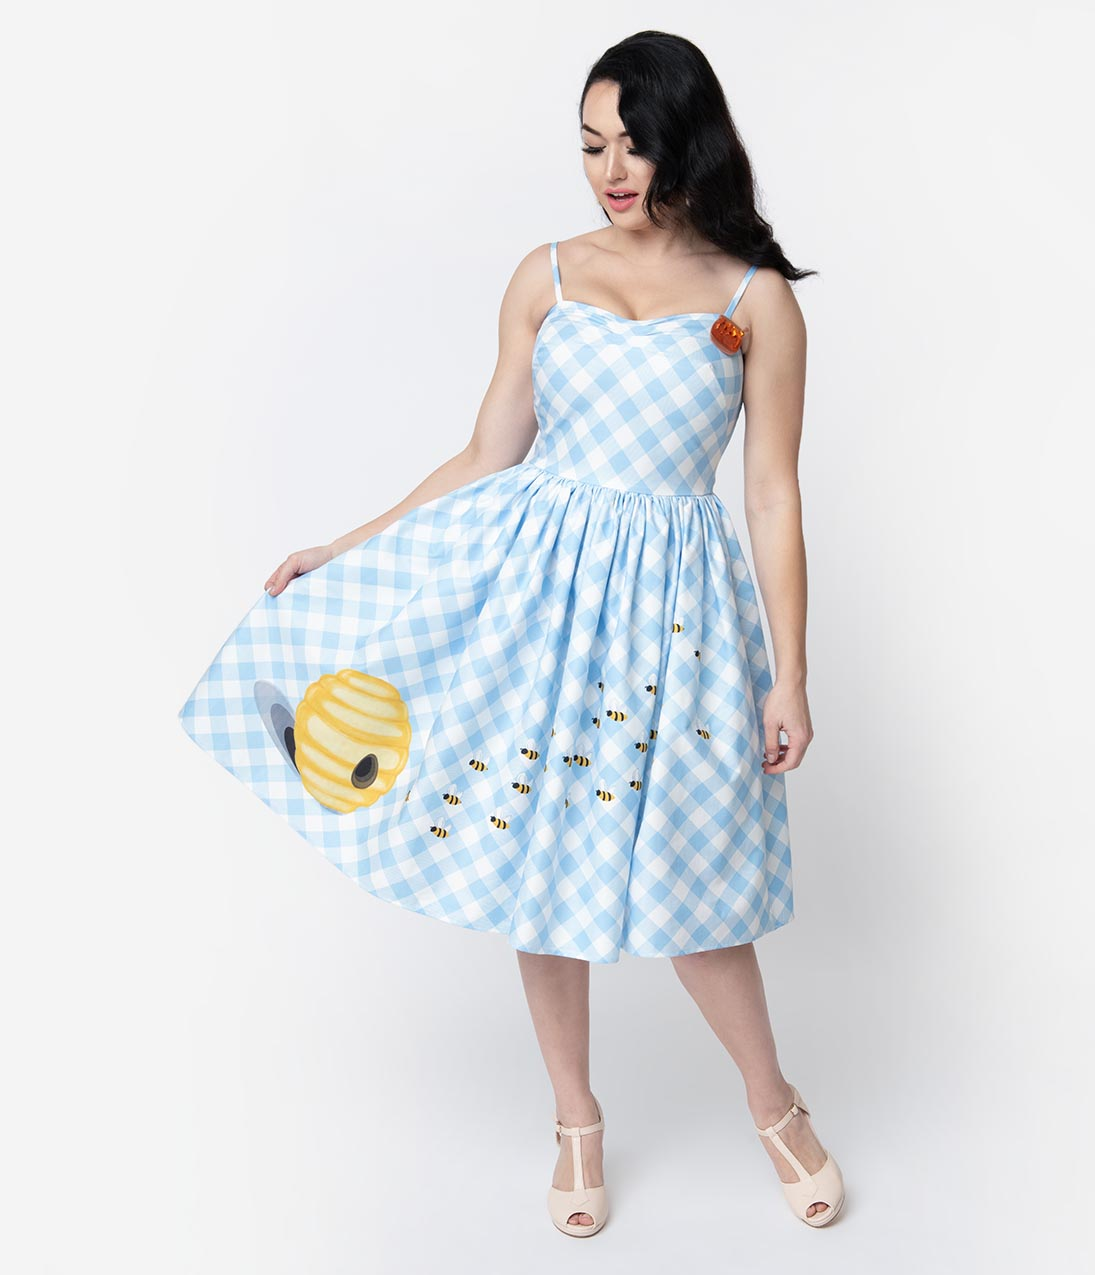 b372f1e9cf3 Unique Vintage 1950s Style Blue   White Gingham Bumblebee Darcy Swing Dress